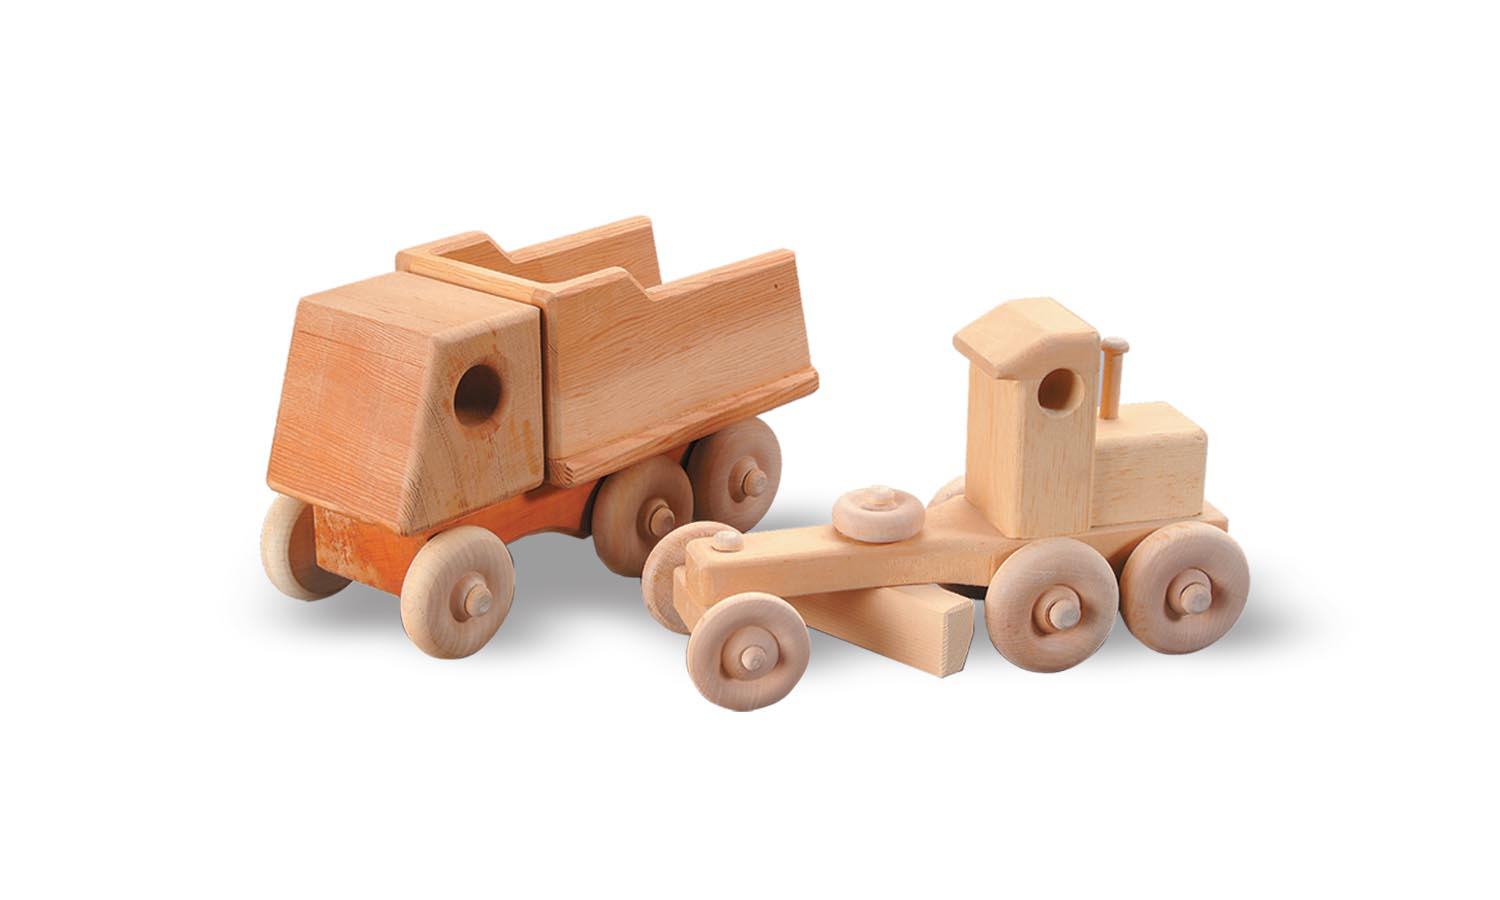 wood working patterns for trucks, semi tractors